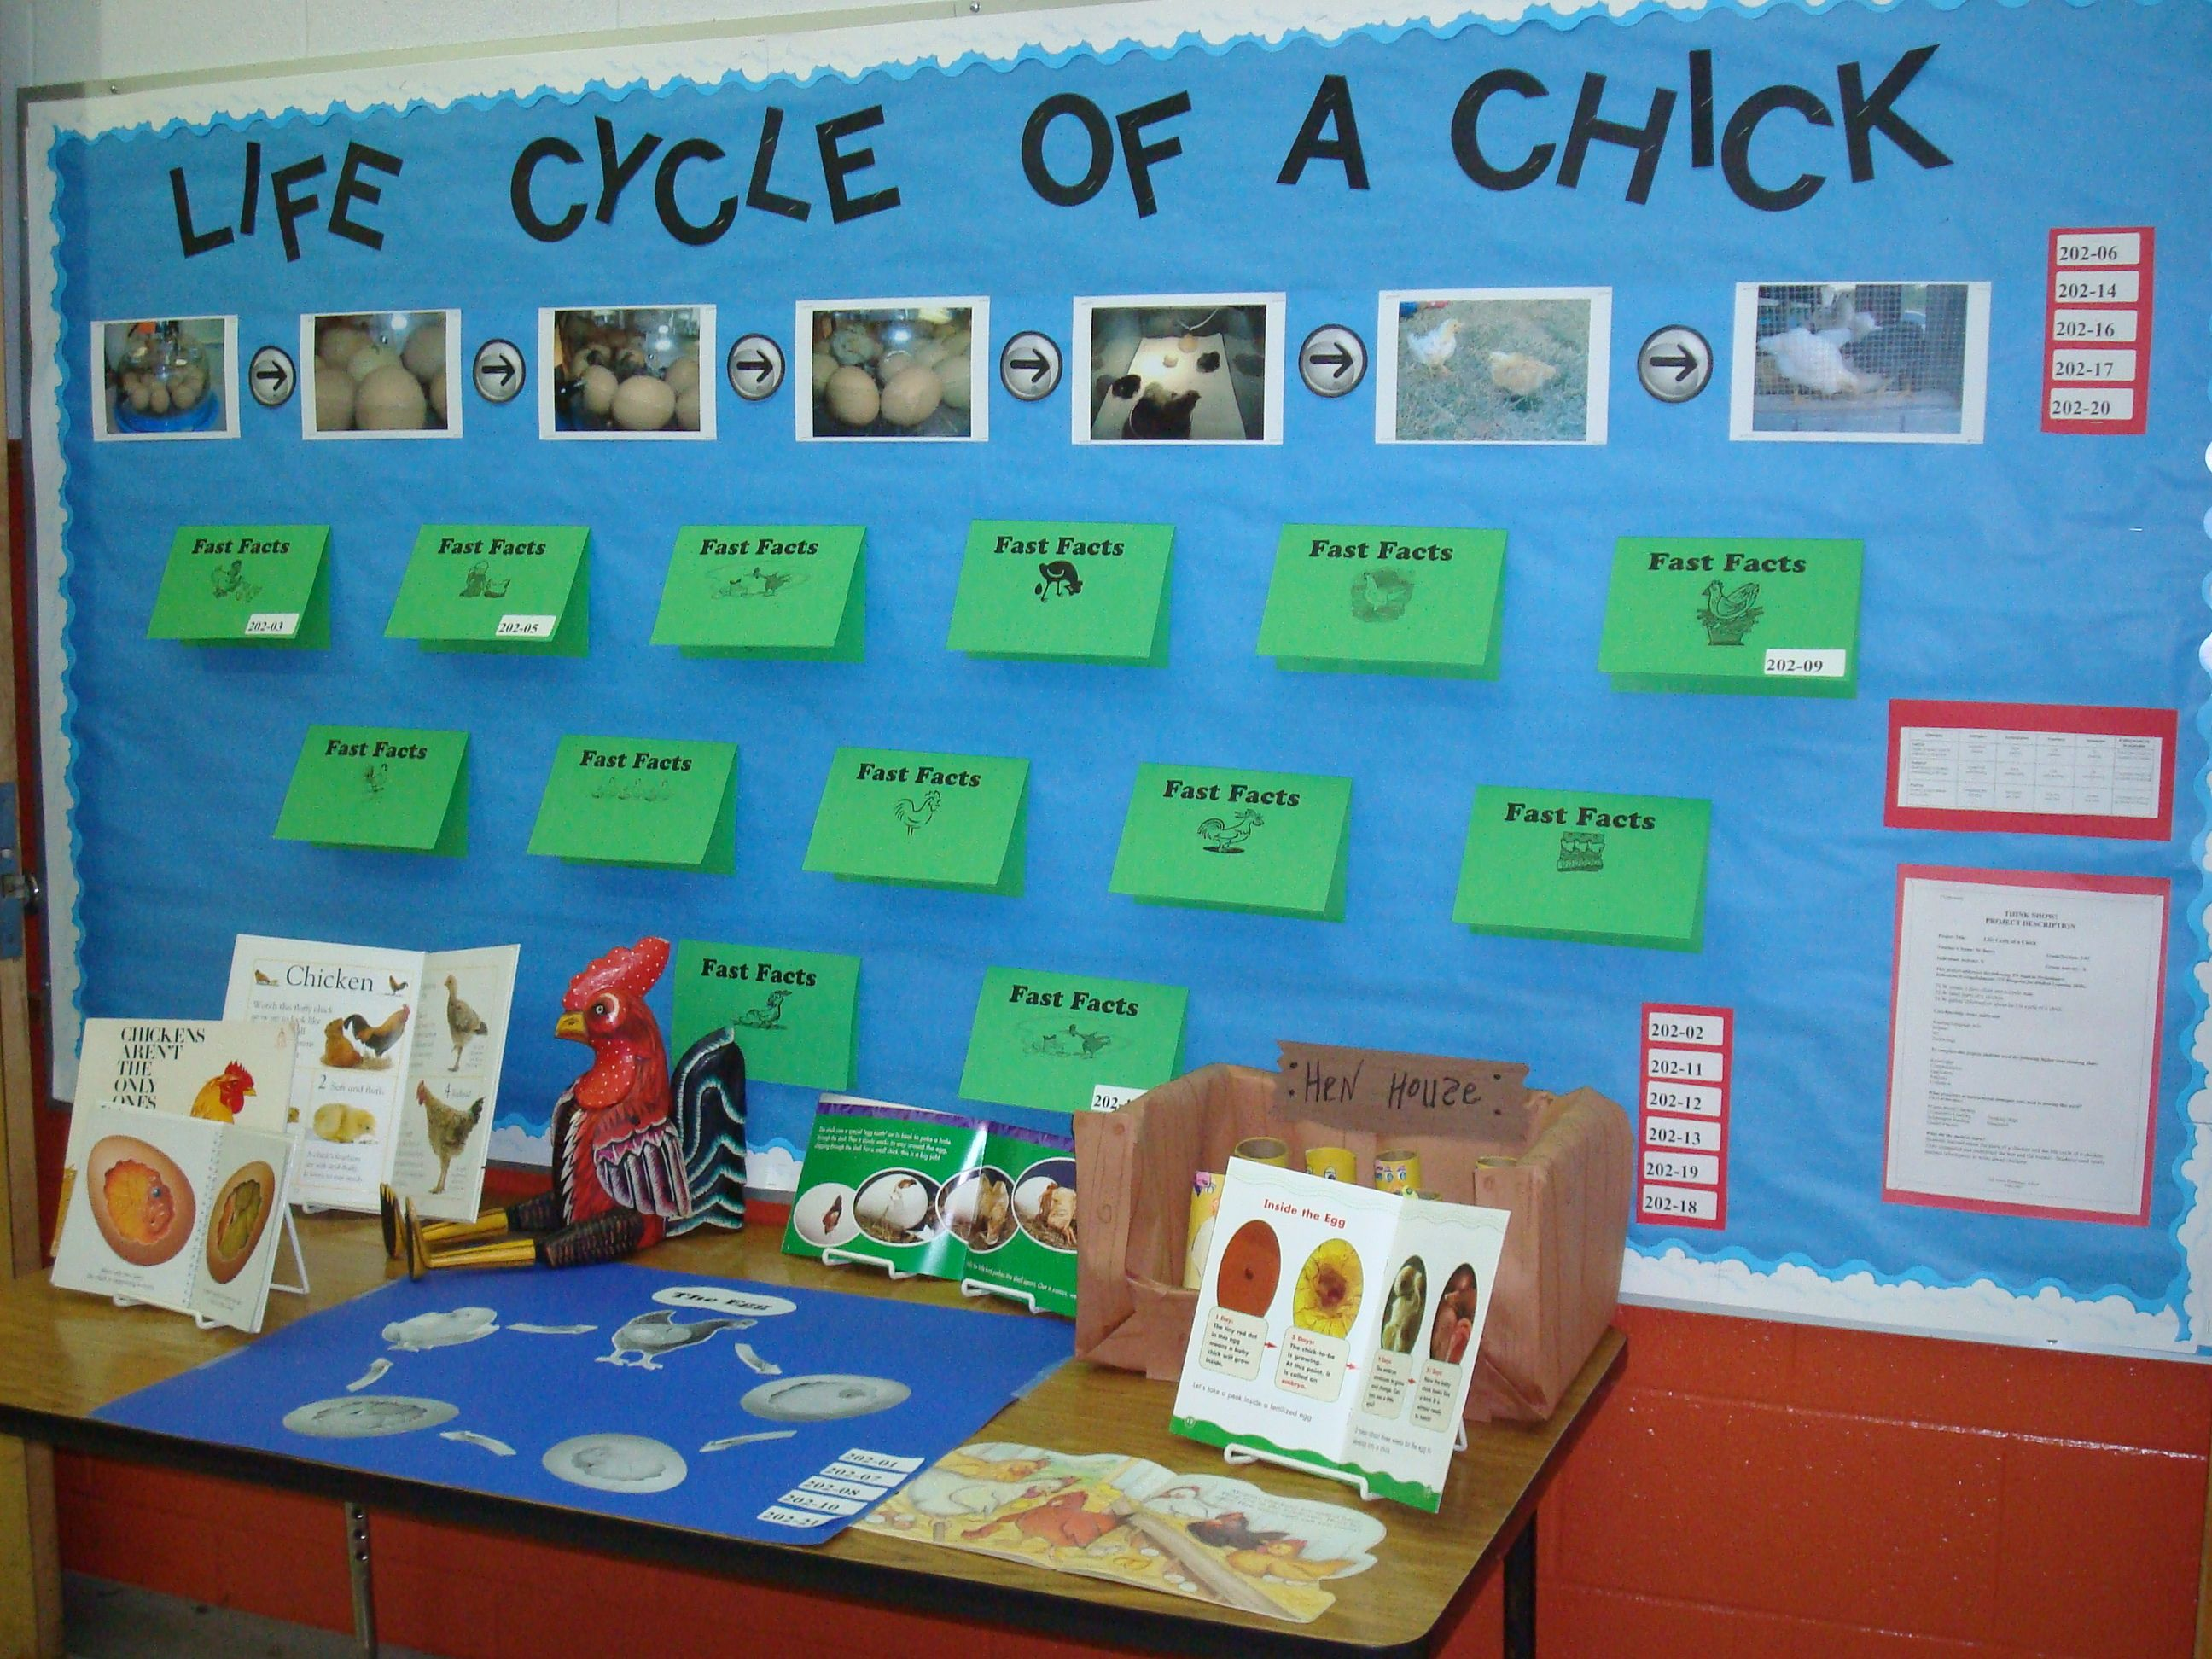 Life Cycle Of A Chick